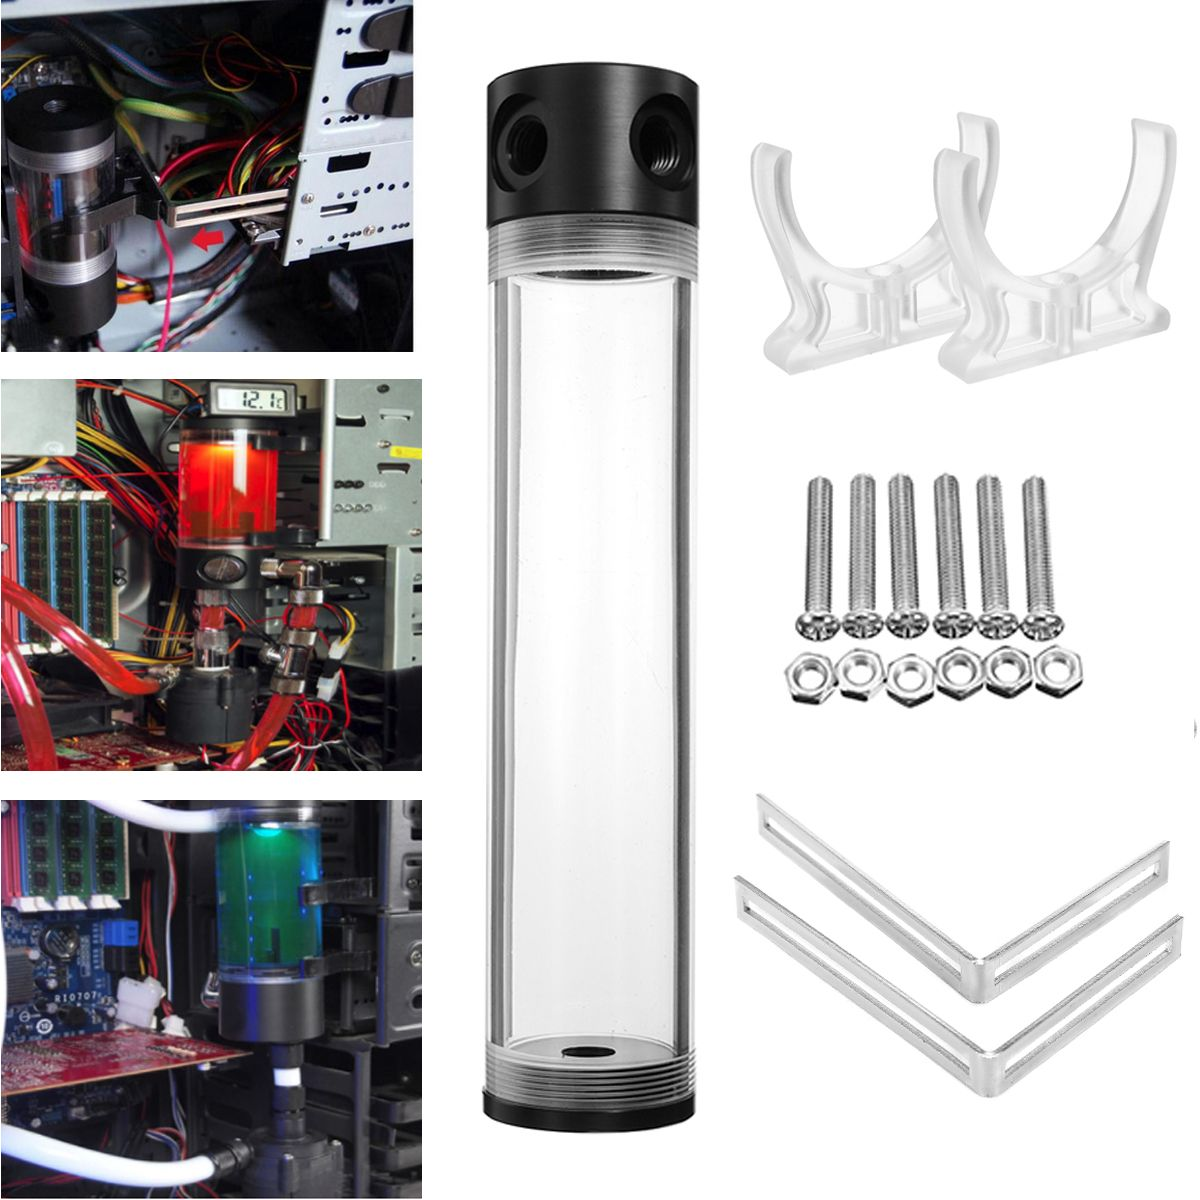 LEORY G1/4 T 50 x 240mm Water Cooling Tank Reservoir Helix Suspension Liquid Cooling Tank PC Computer Water Cooling Fan For CPU